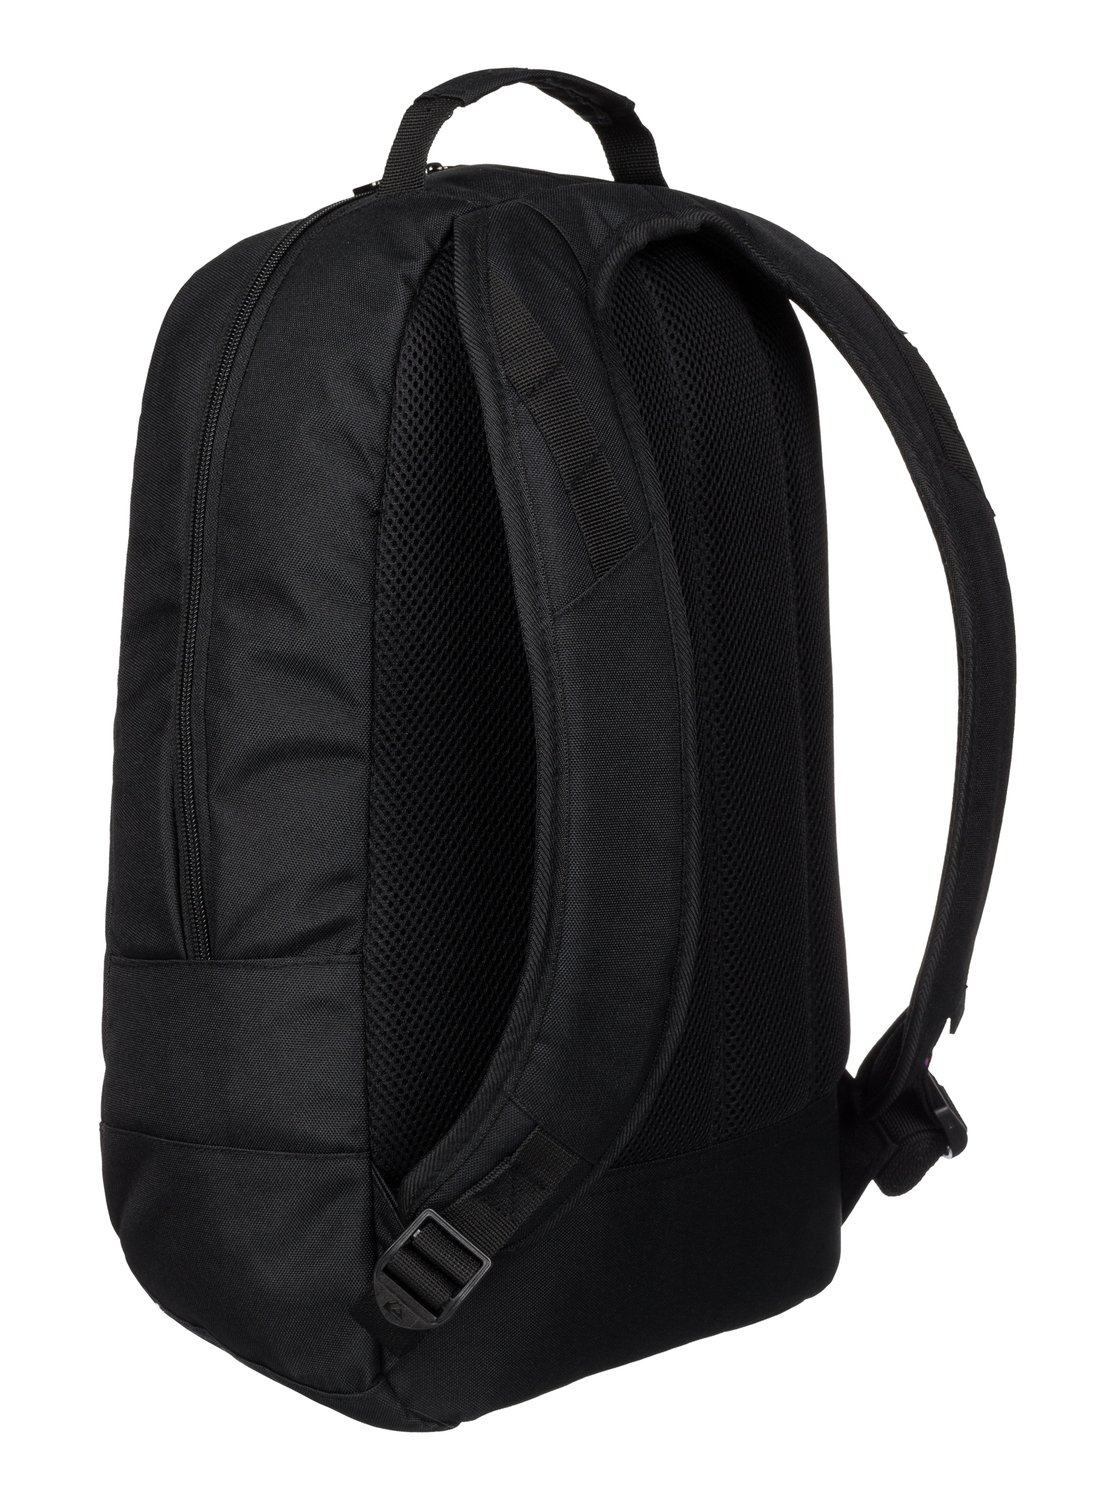 Ridge Backpack 1153040701 | Quiksilver